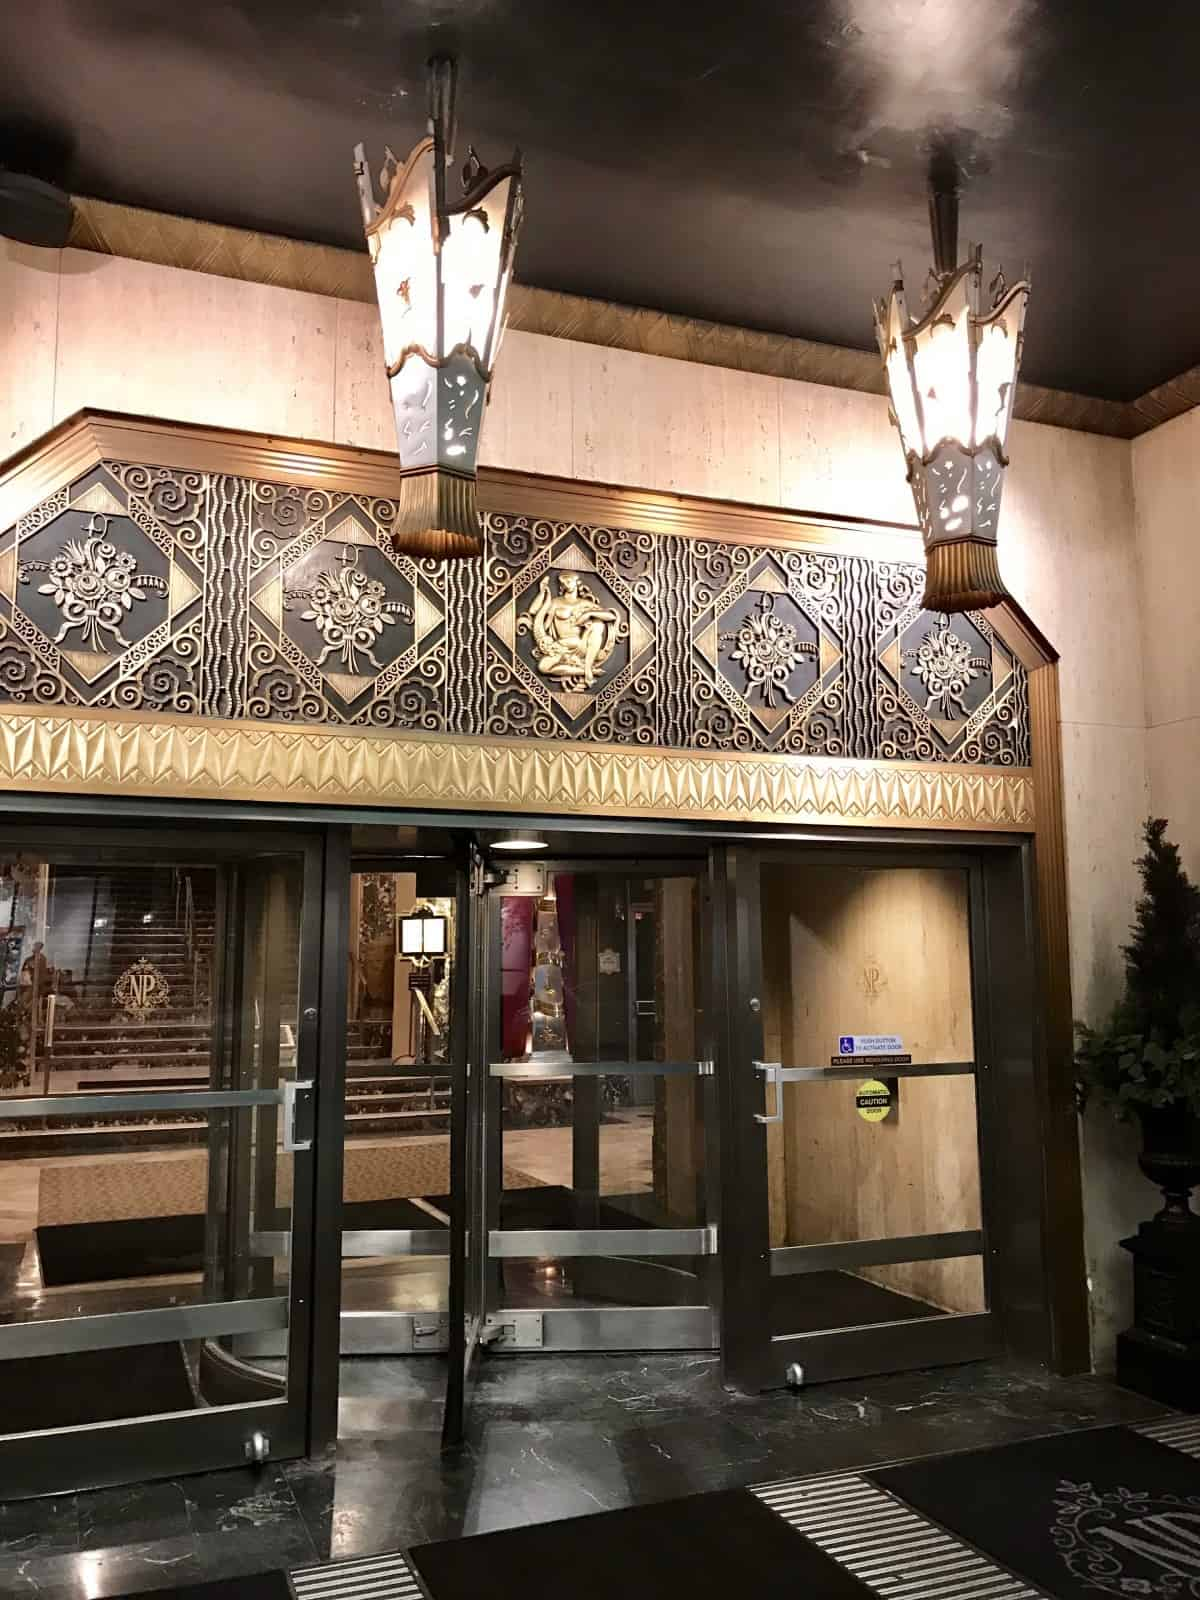 Things to do in Cincinnati on a weekend trip - consider a stay at the historic Art Deco Netherland Plaza hotel